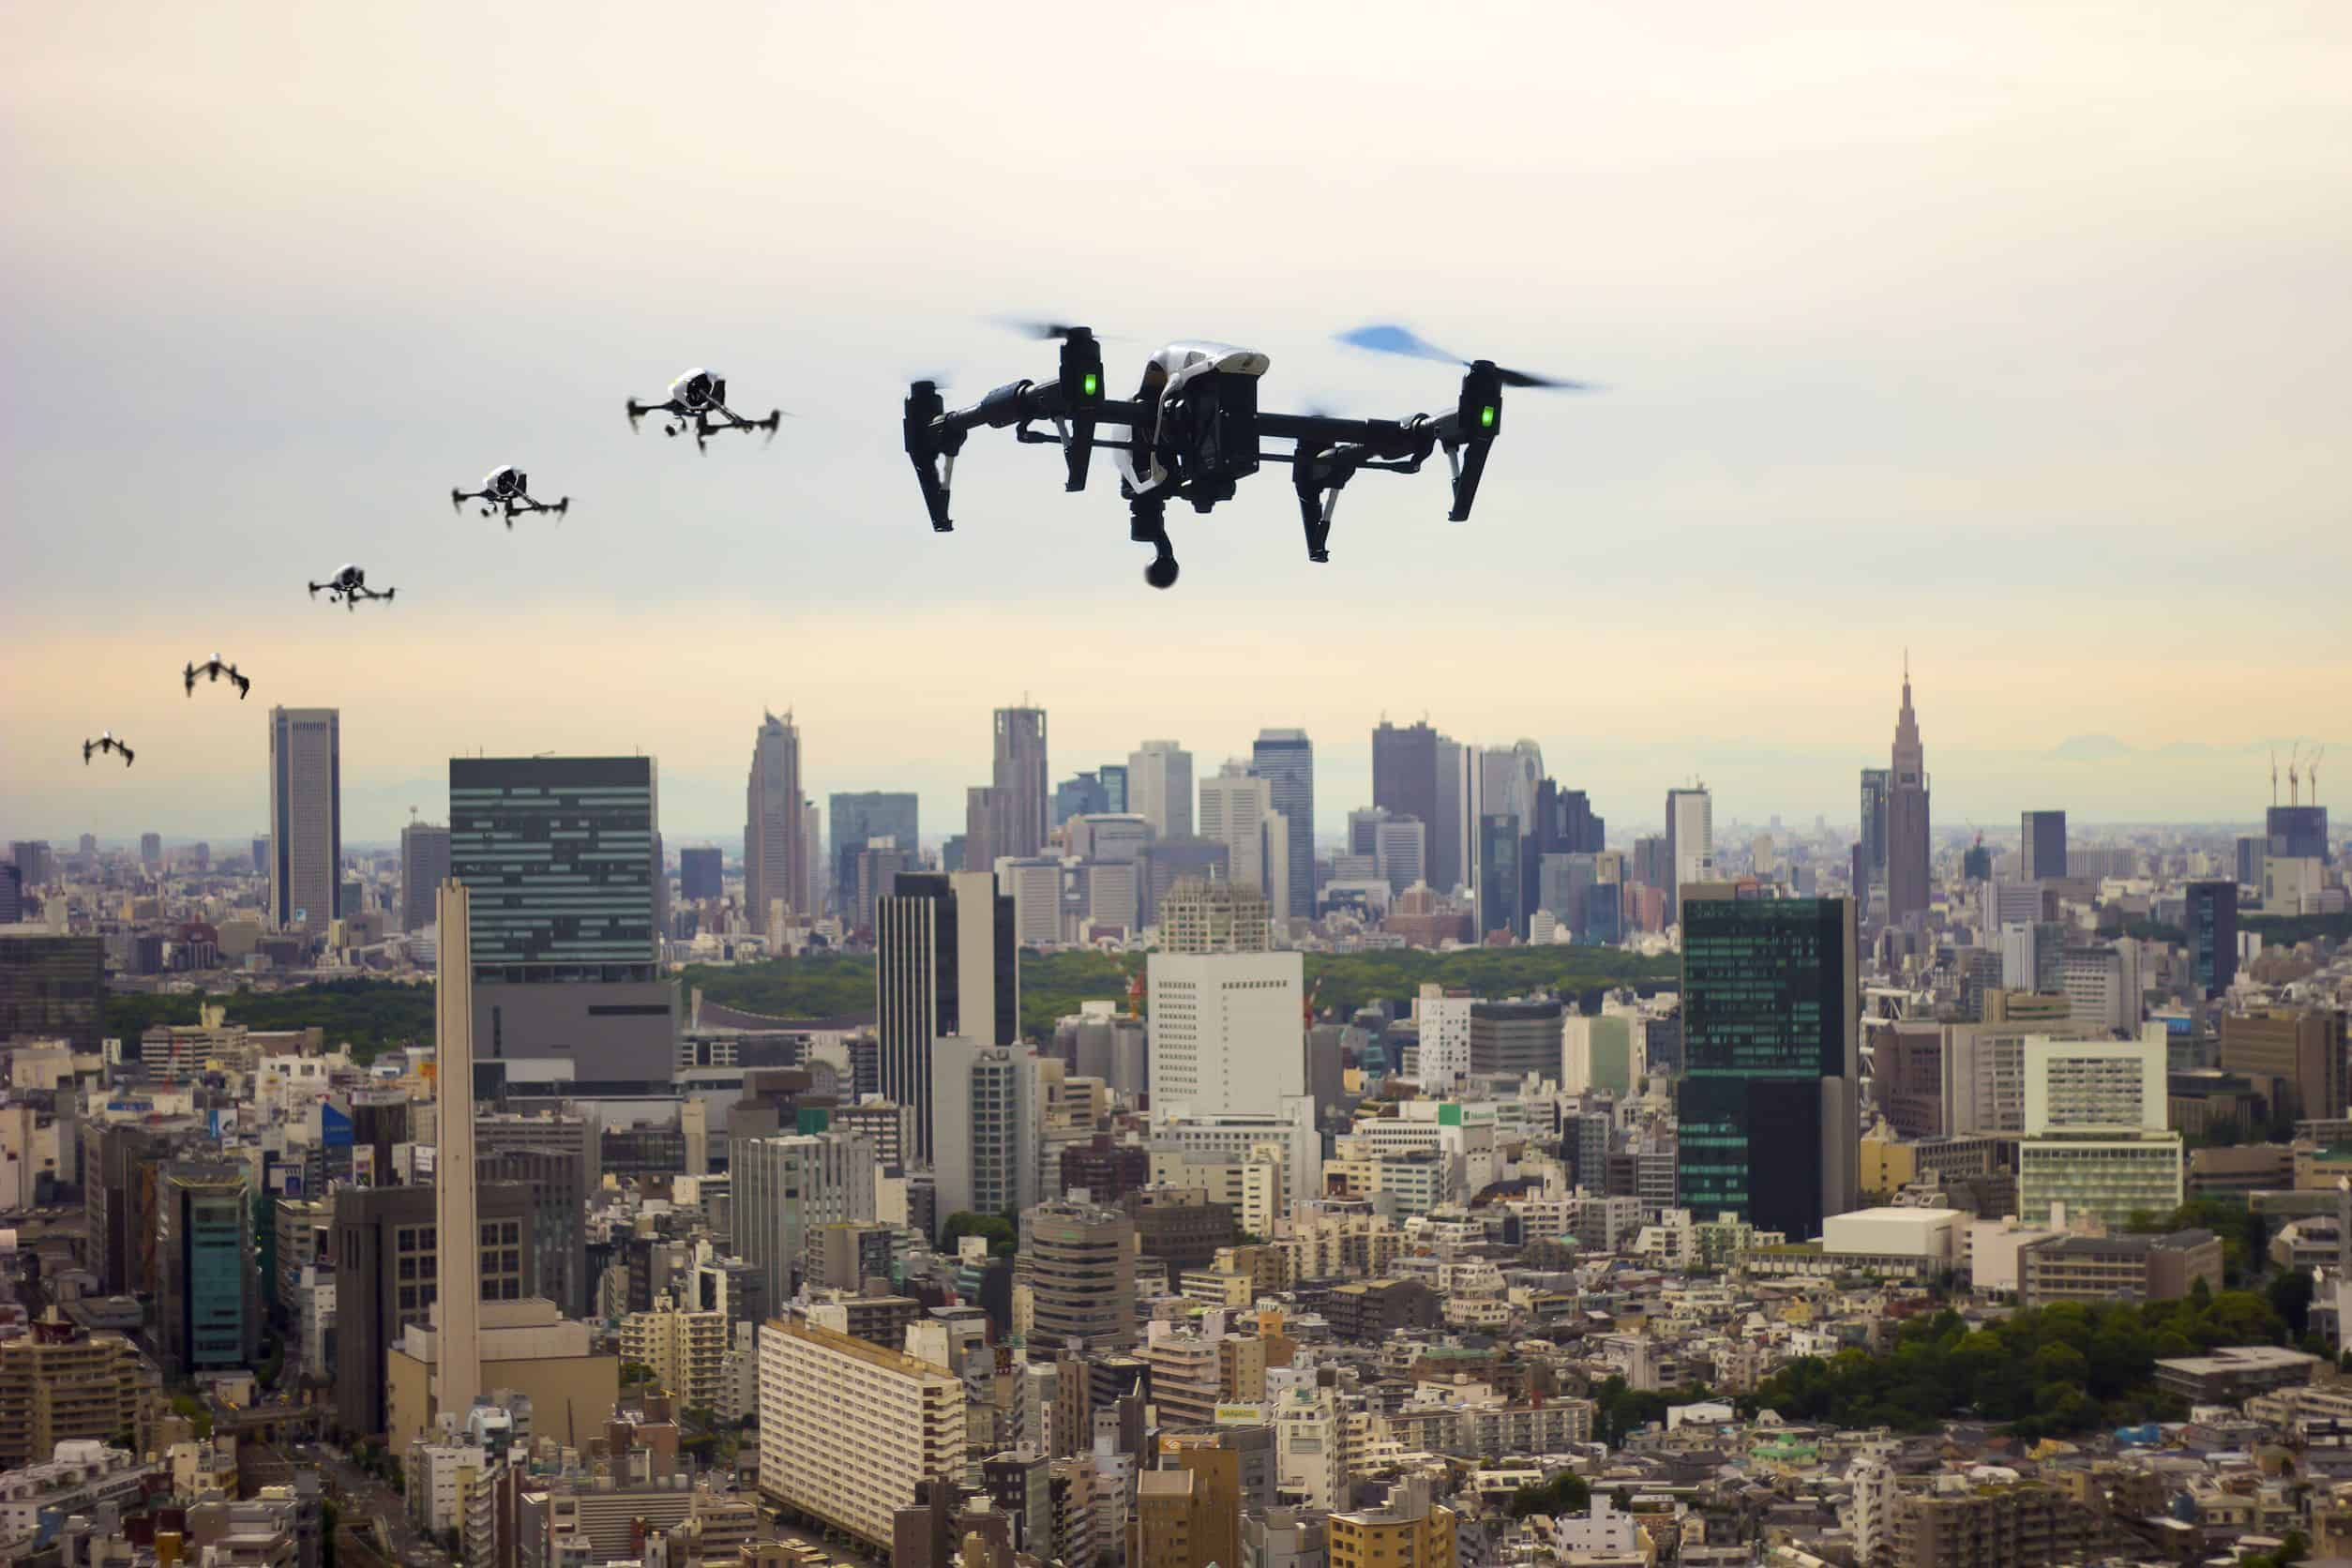 5 Facts On If You Can Fly a Drone over Private Property